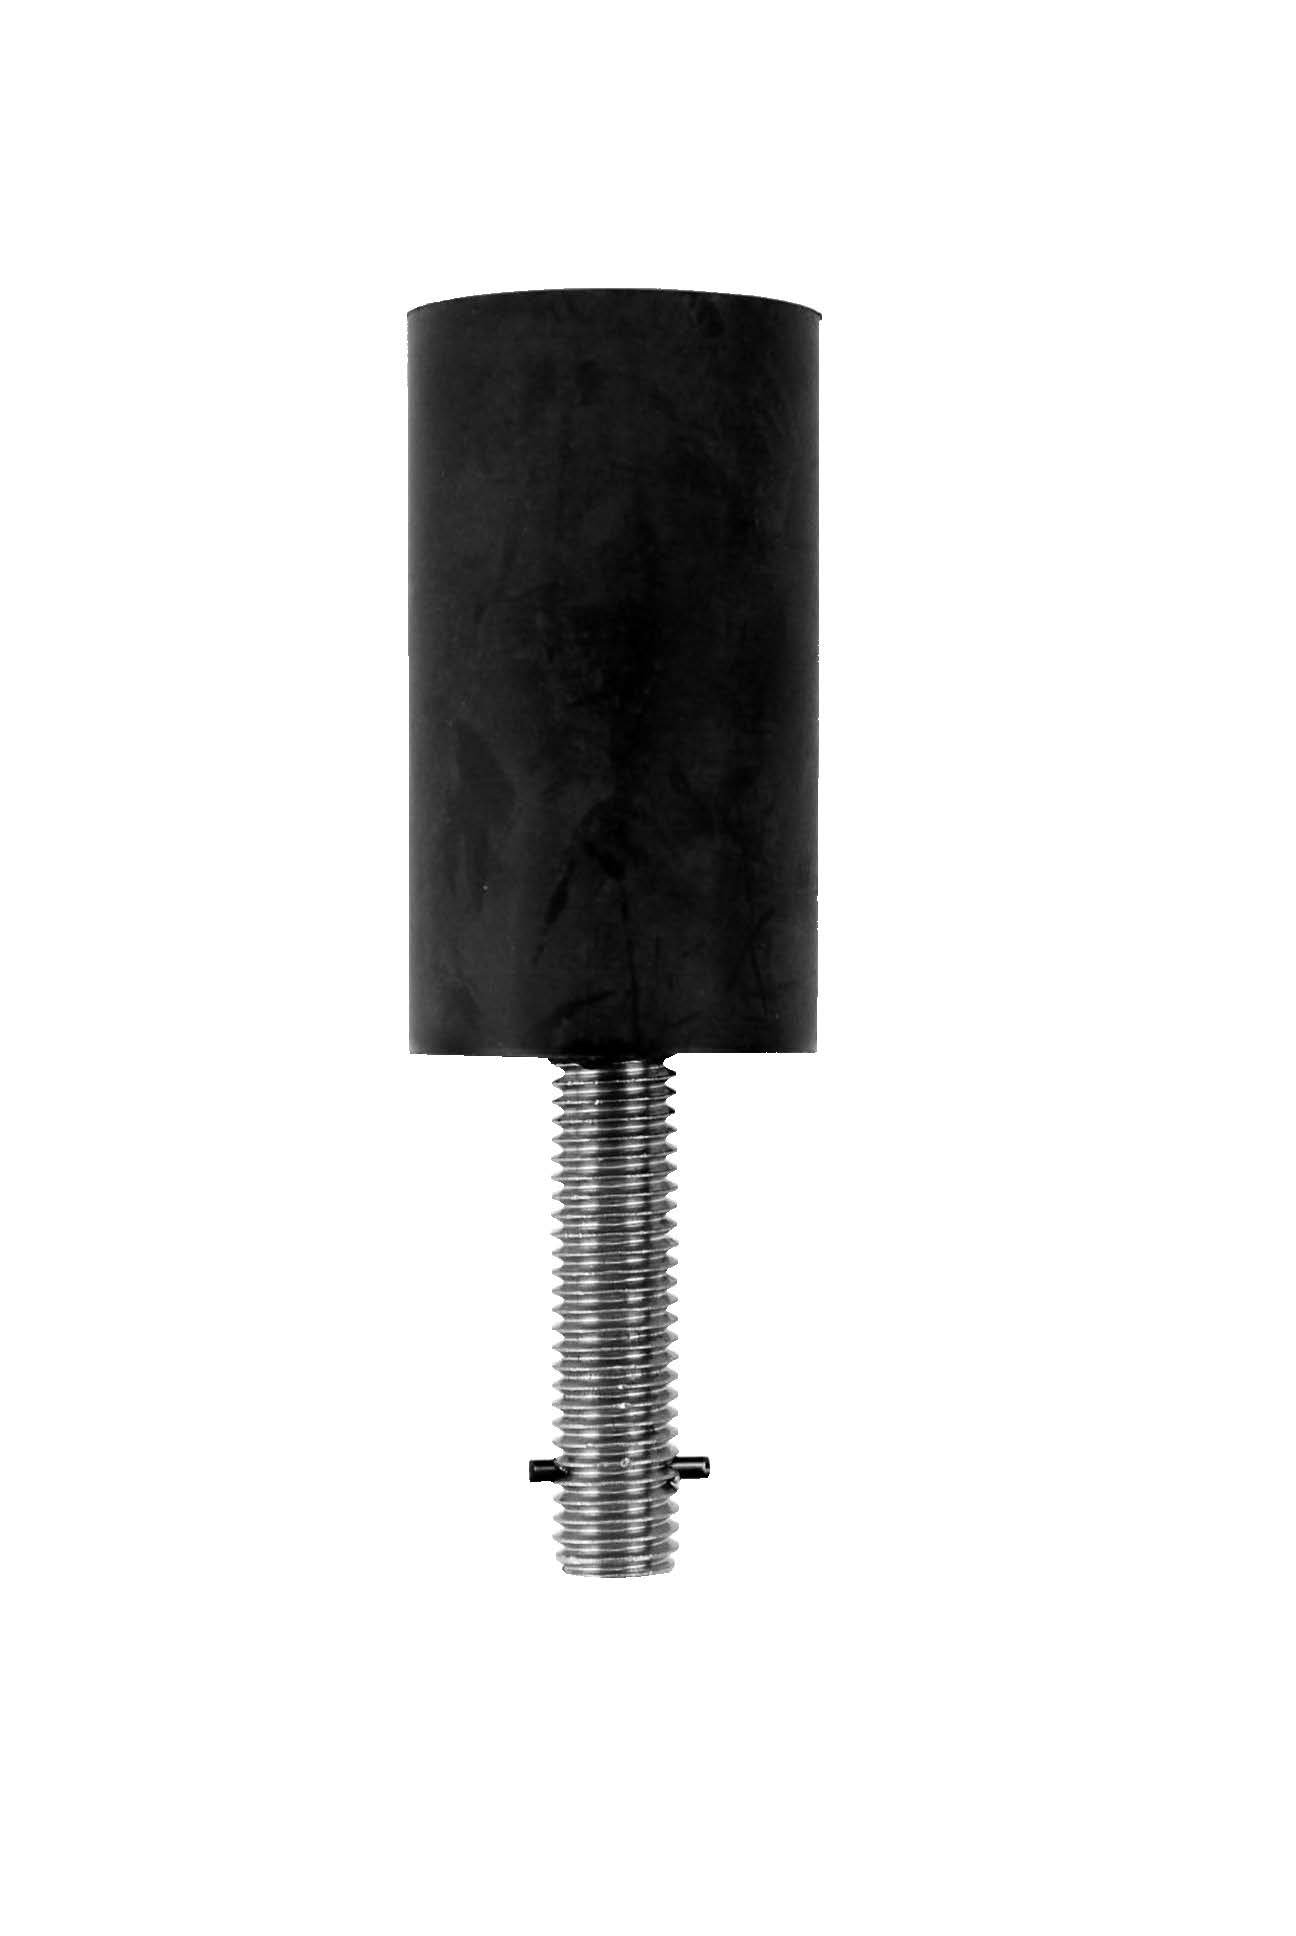 Don-Jo 1463 Detention Stop with 1/2'' x 2-1/2'' Mounting Bolt, 6'' Height, 3-1/2'' x 2'' Base, Black (Pack of 10)